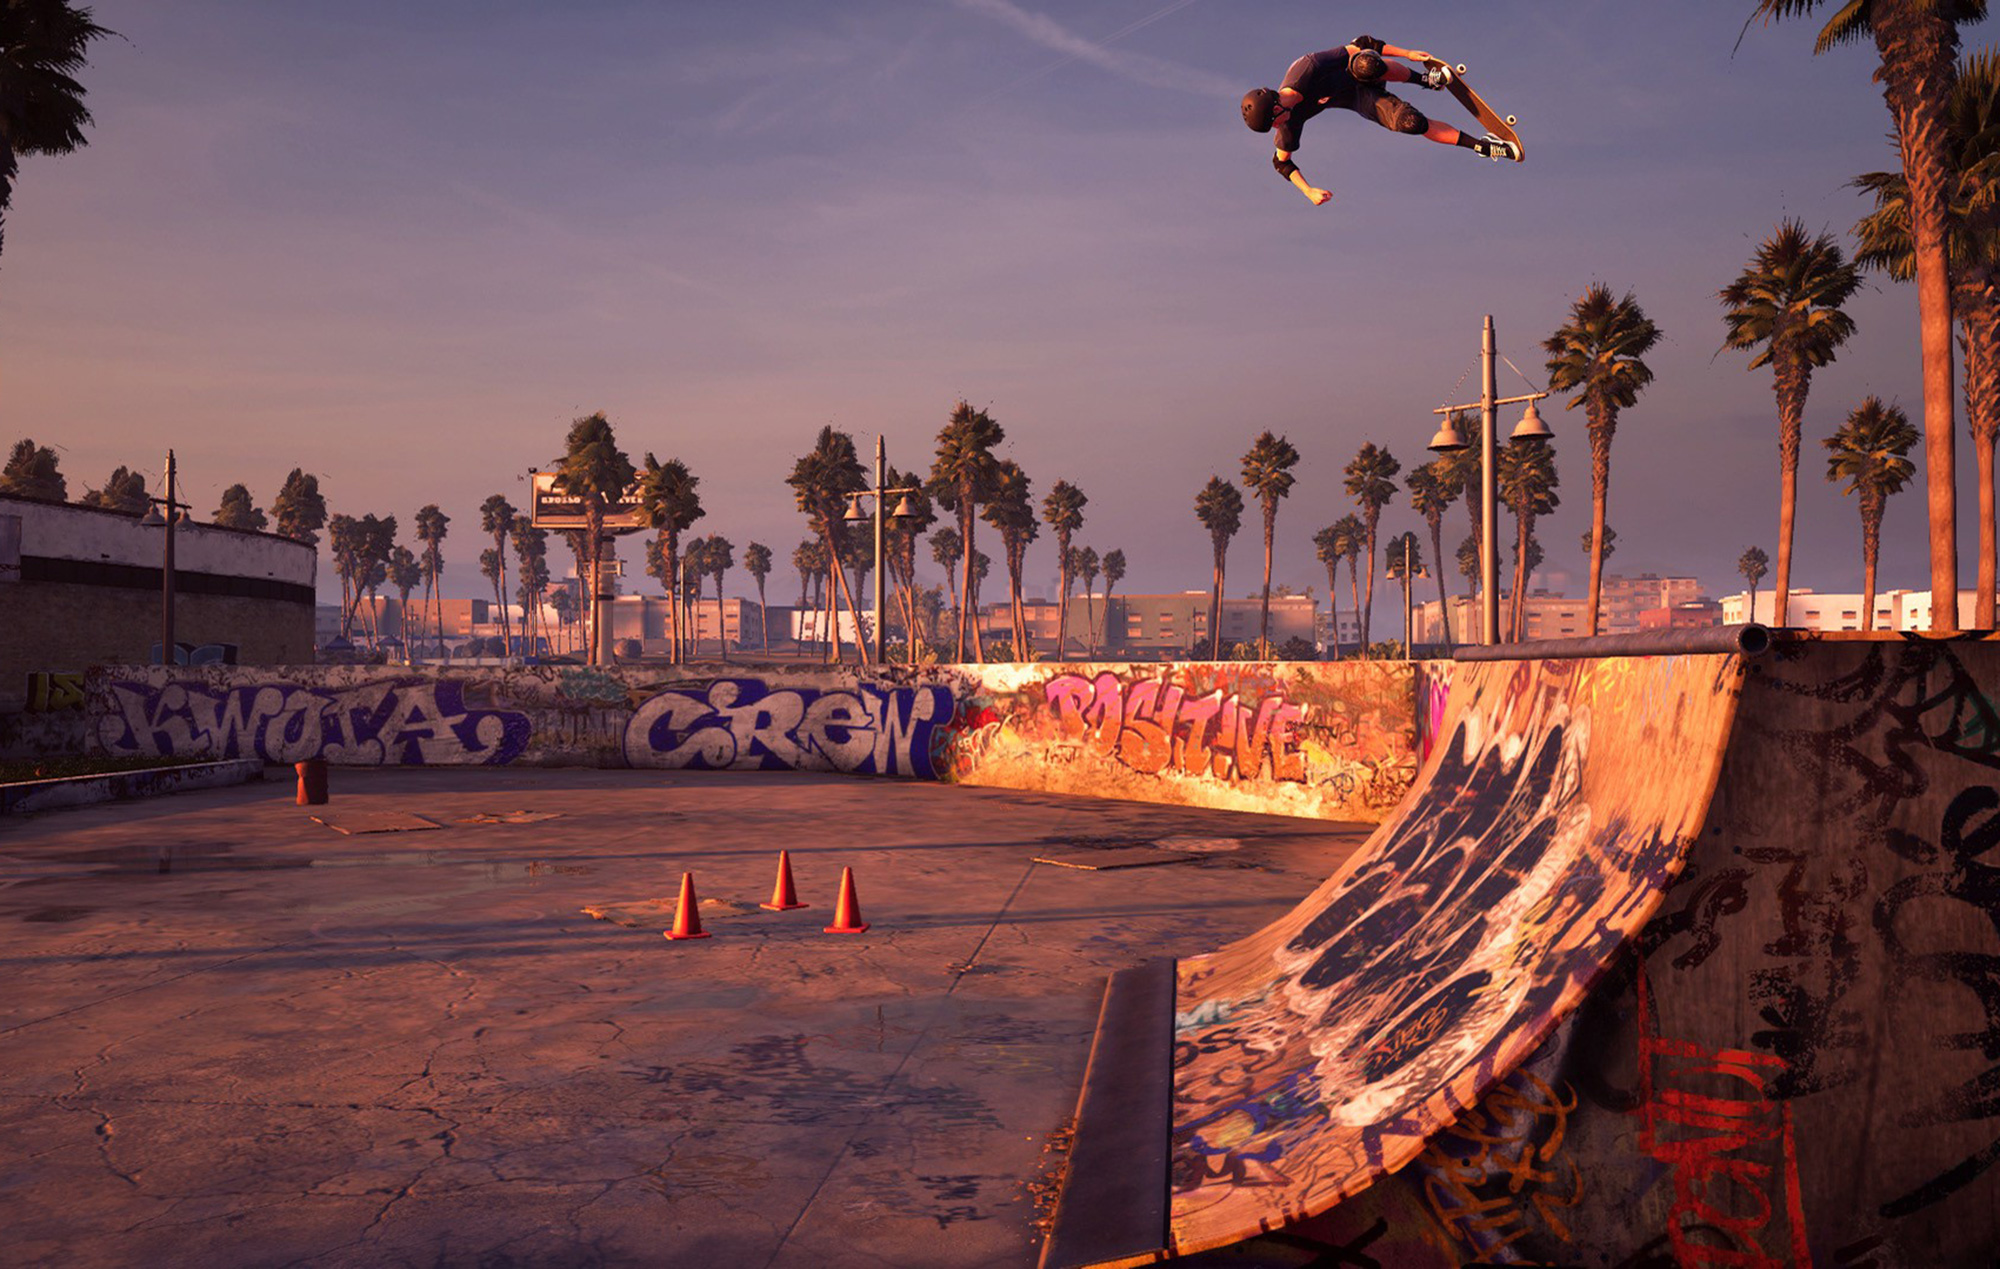 THPS 1 and 2